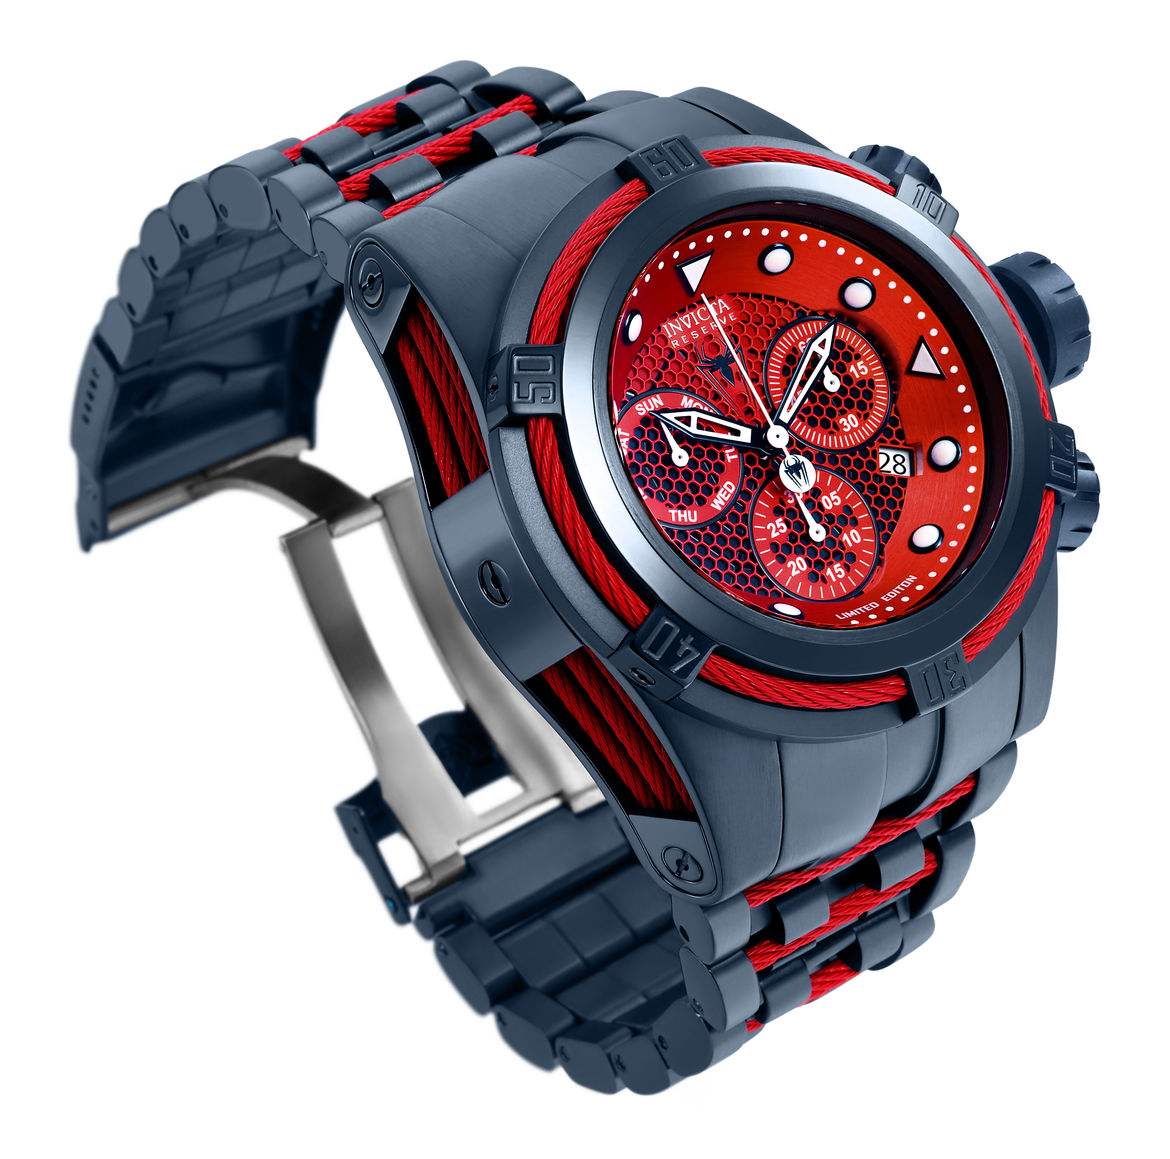 spider-man invicta watch nycc